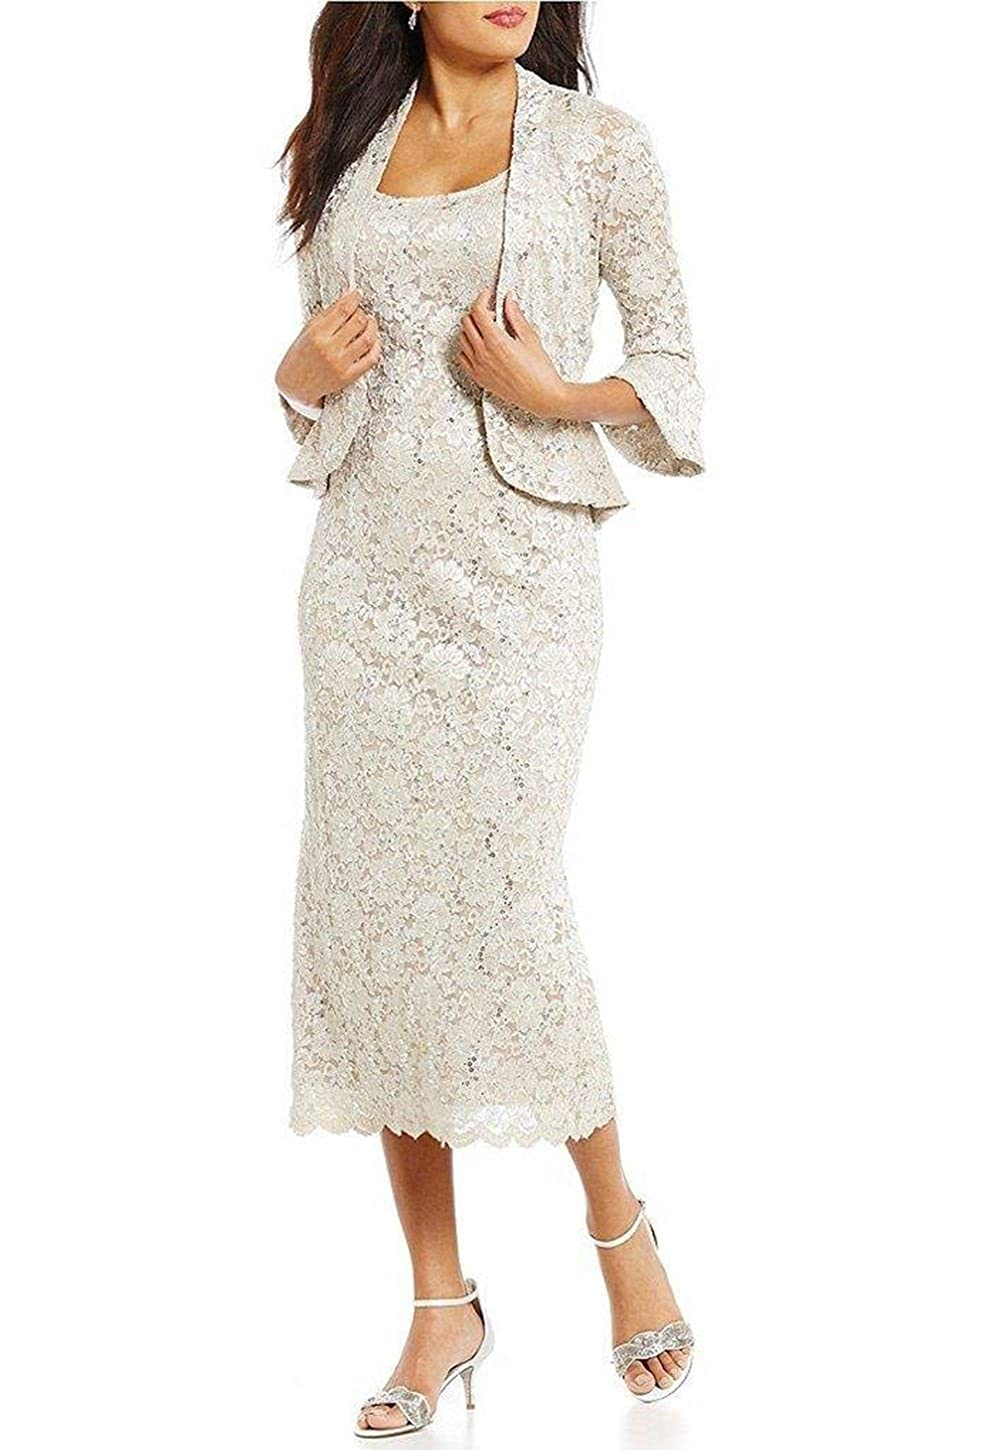 Ugly Two Pieces Lace Mother Of The Bride Wedding Dresses Tea